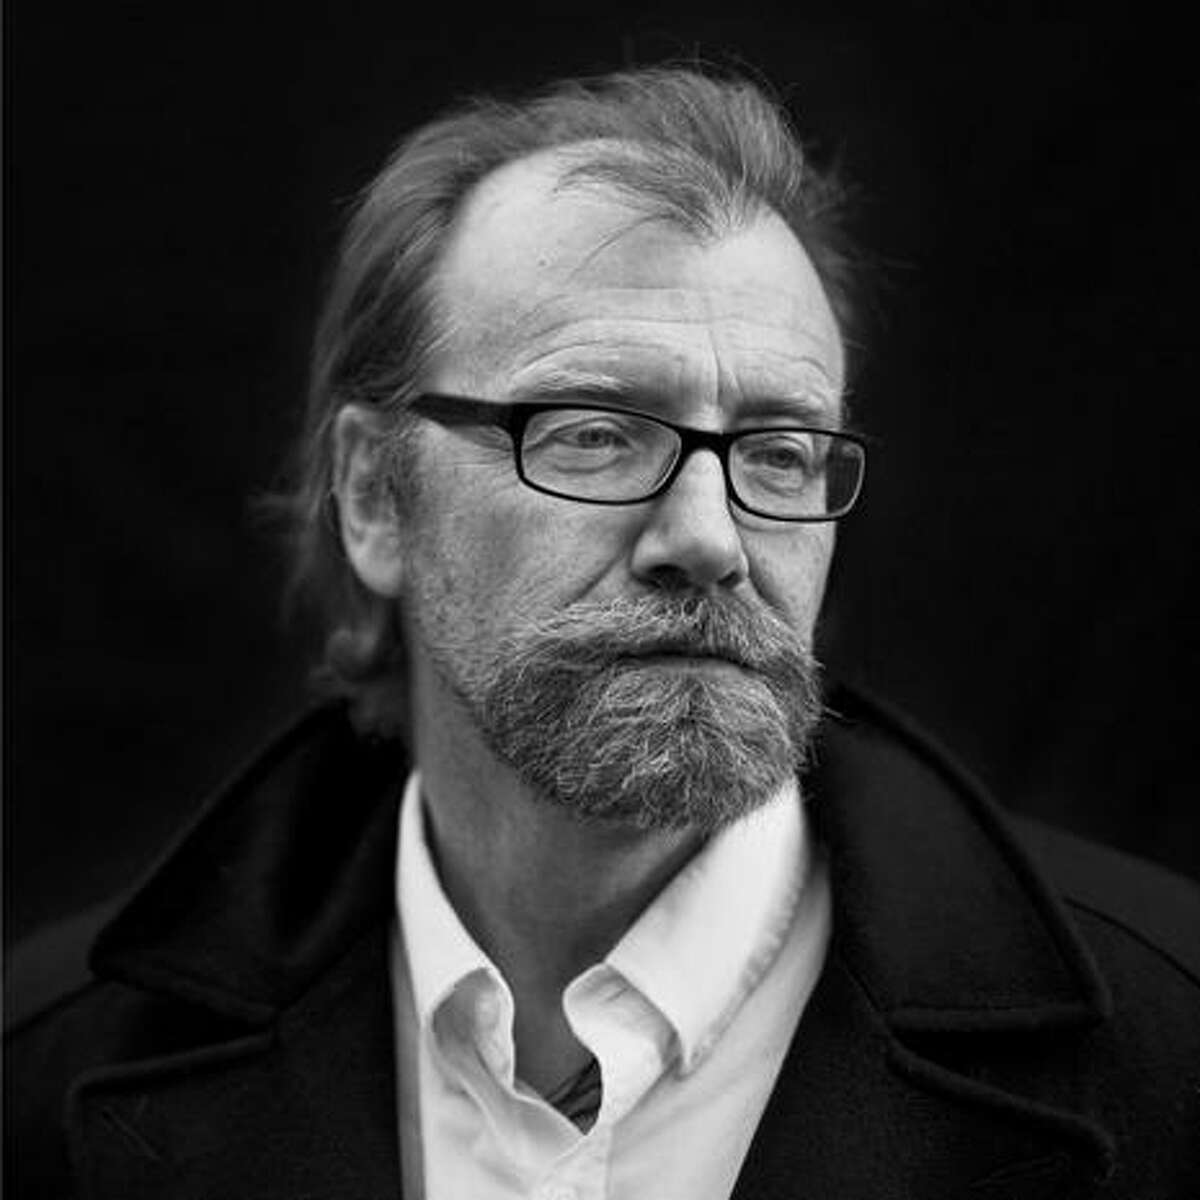 George Saunders is the author of the critically acclaimed short story collections